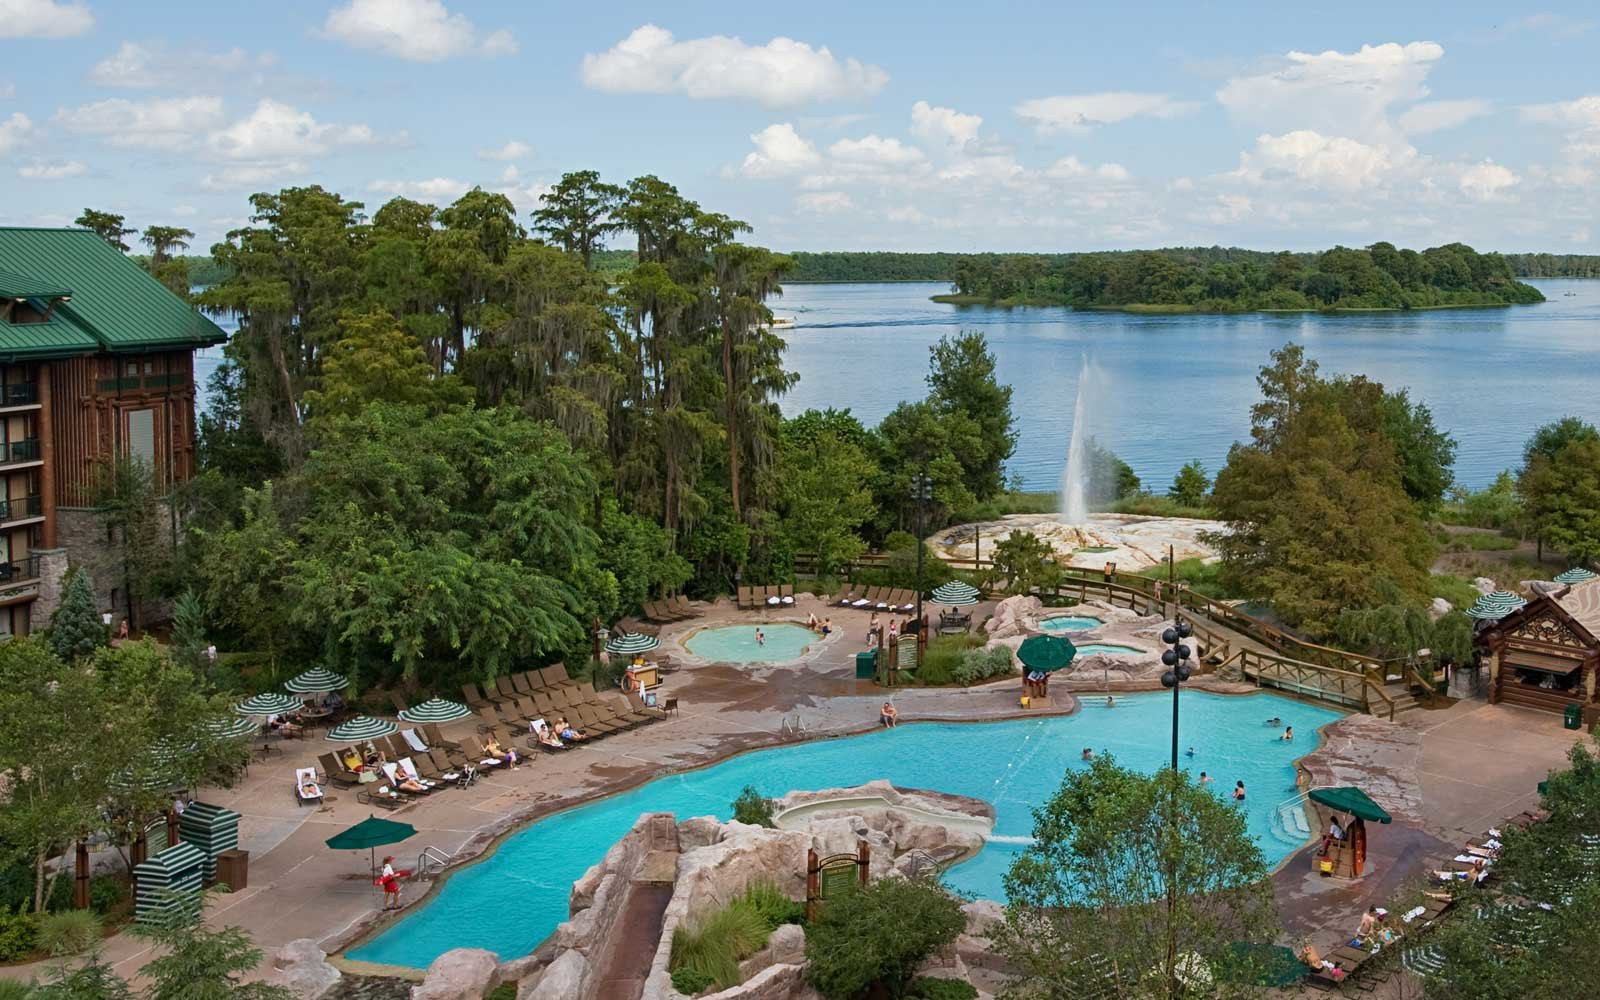 Pool at Disney's Wilderness Lodge